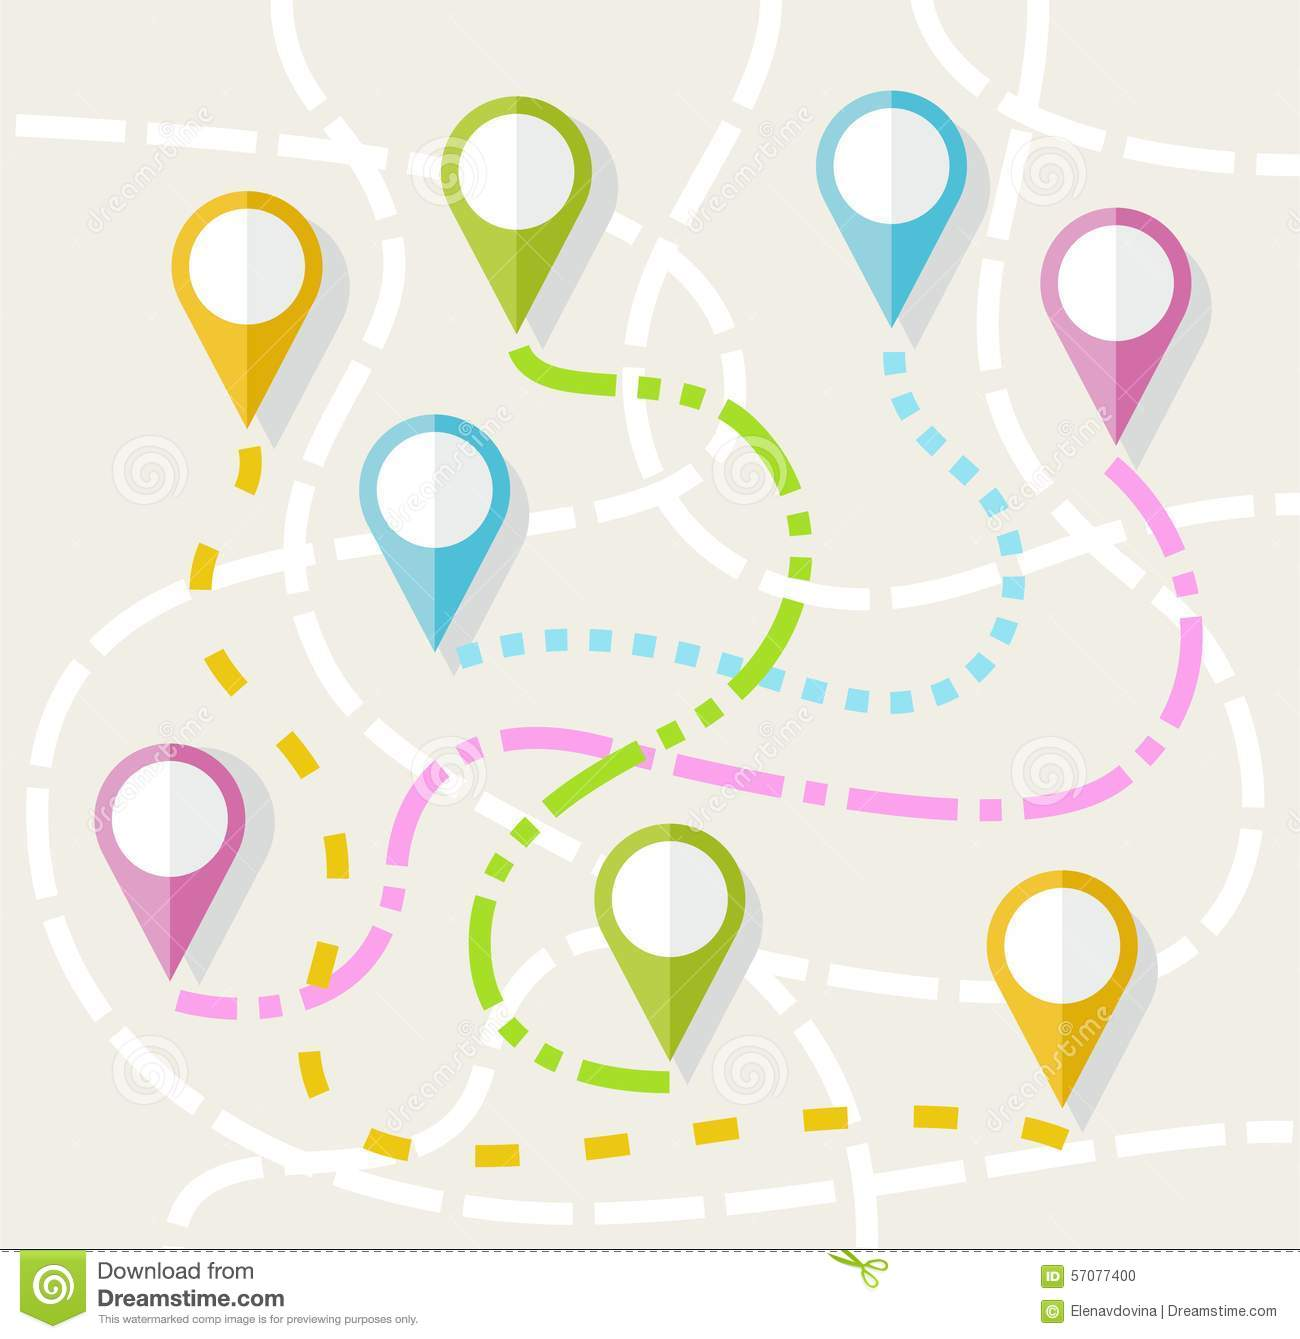 Routes clipart #13, Download drawings